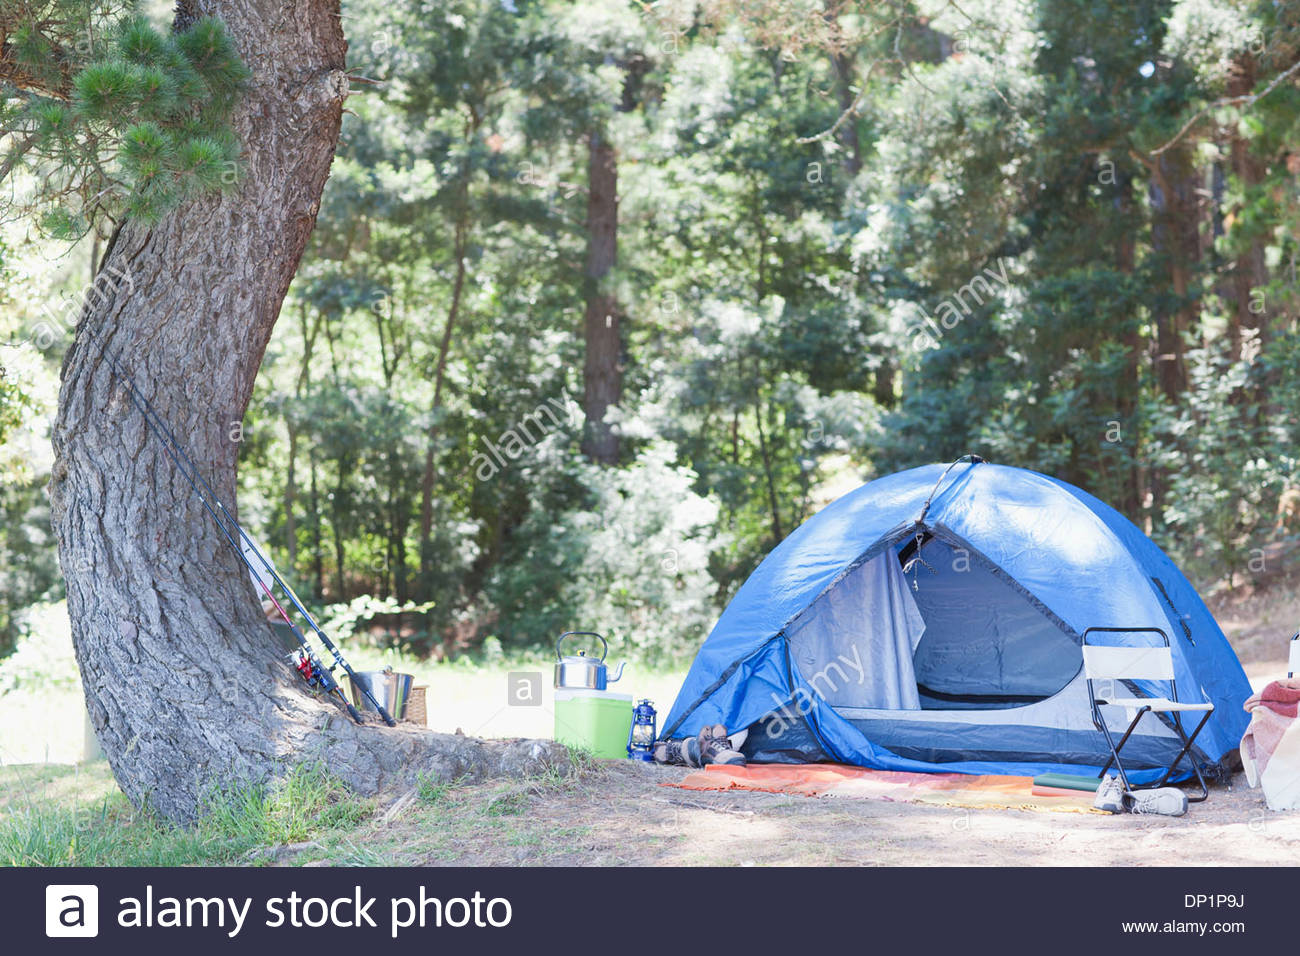 Tent in campsite - Stock Image